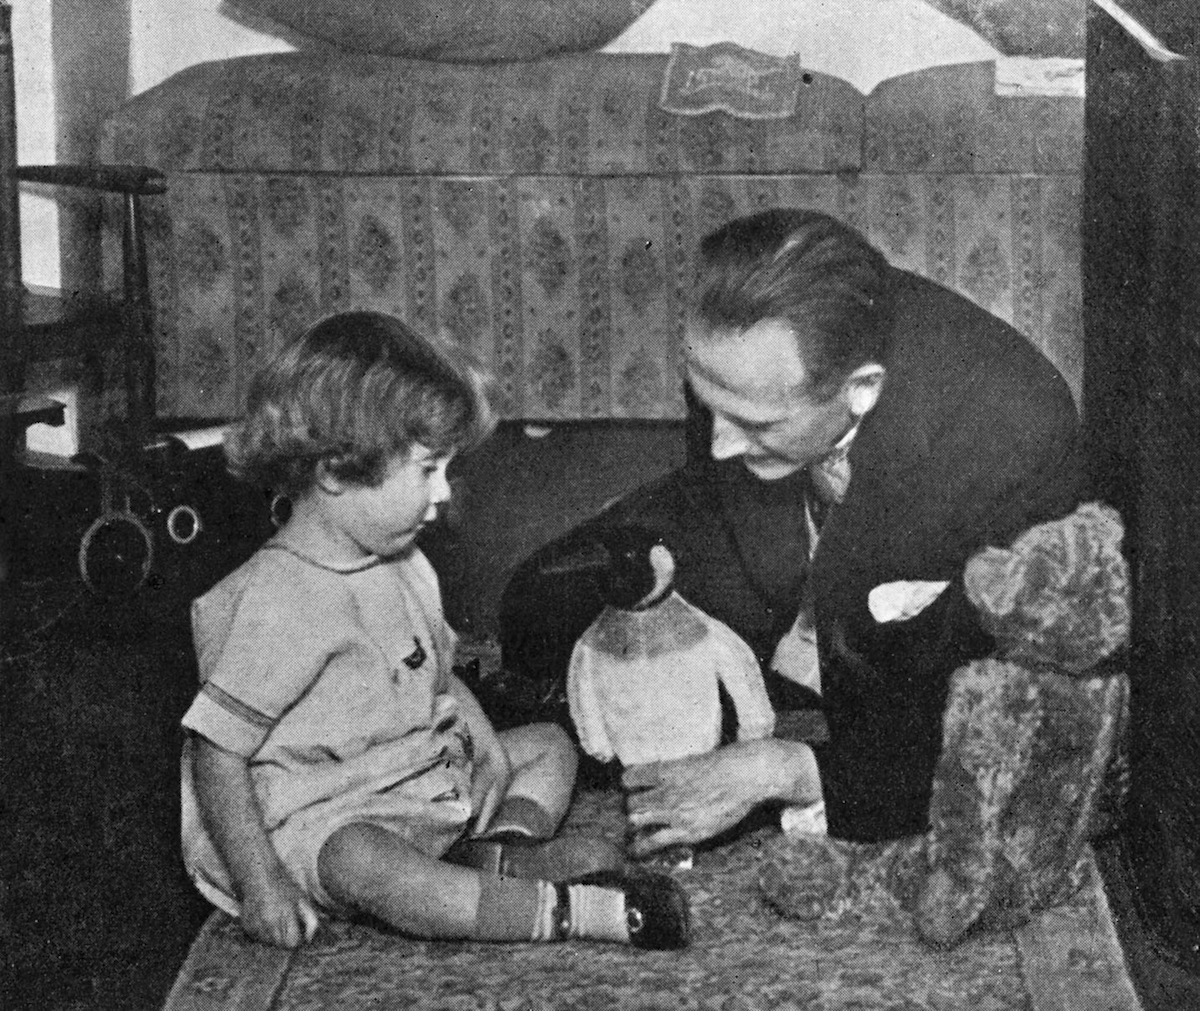 A.A. Milne and Christopher Robin Milne playing with a toy teddy bear